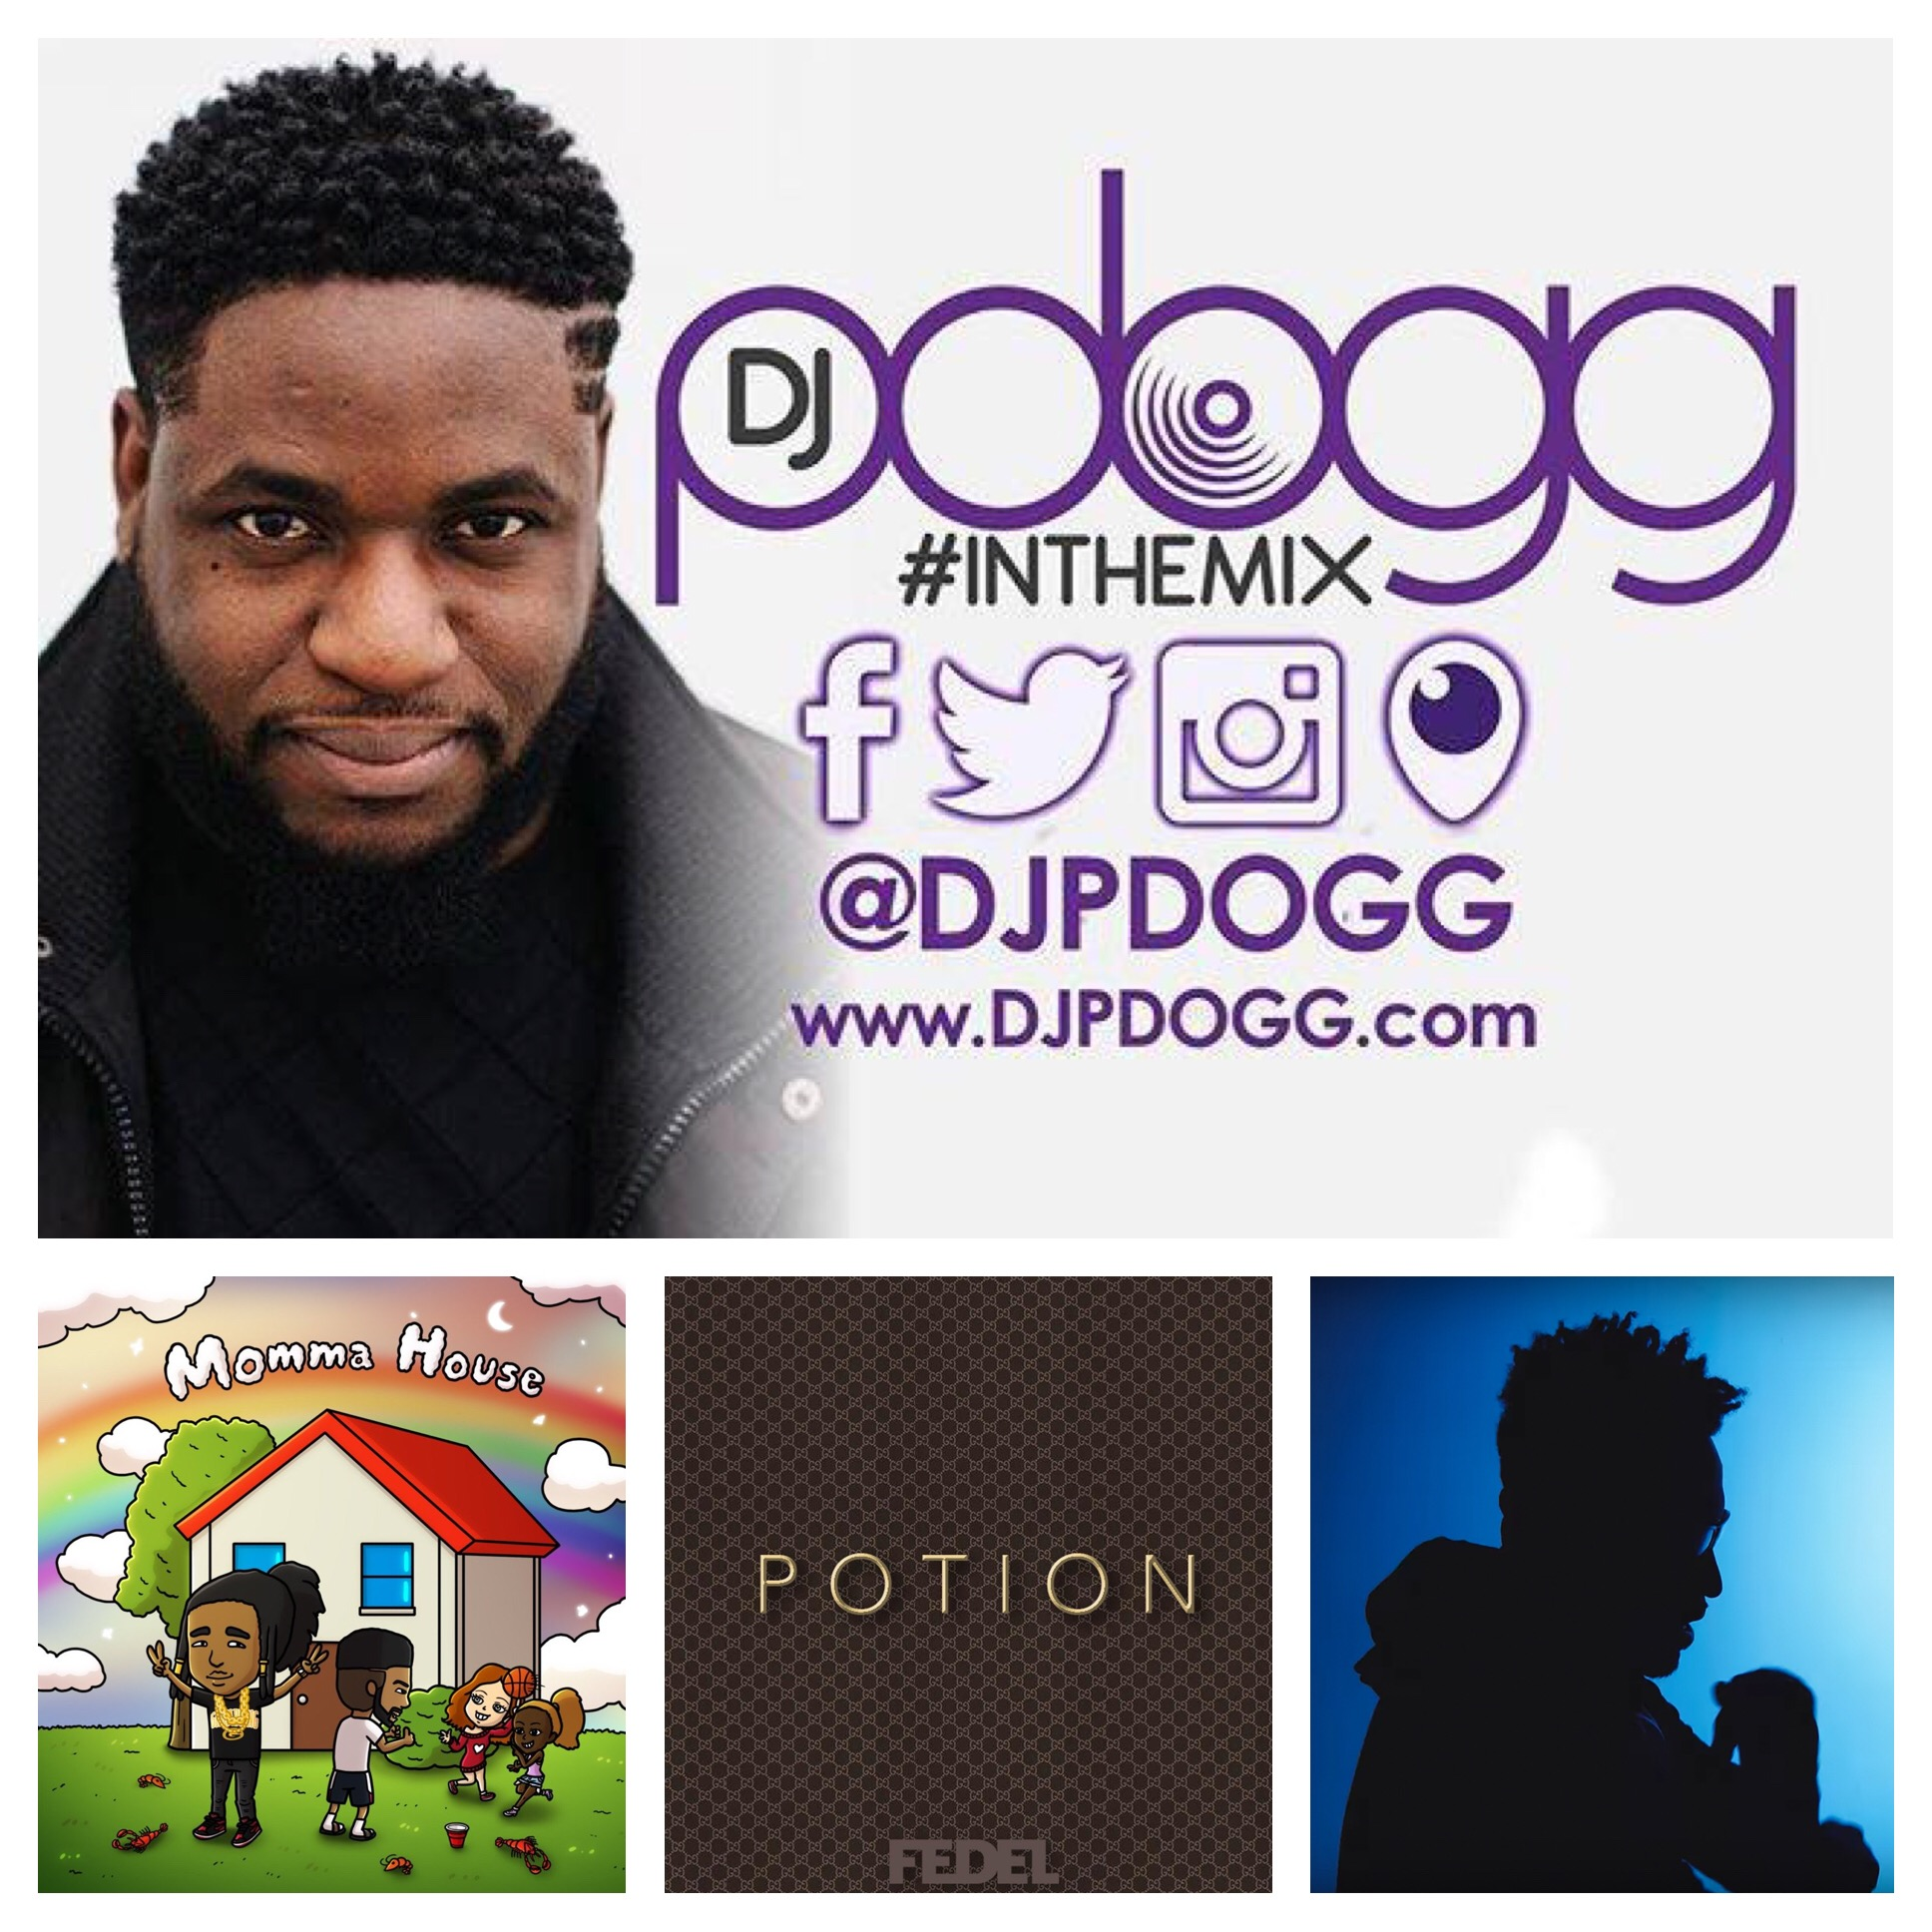 Djpdogg Inthemix Season 13 Episode 17